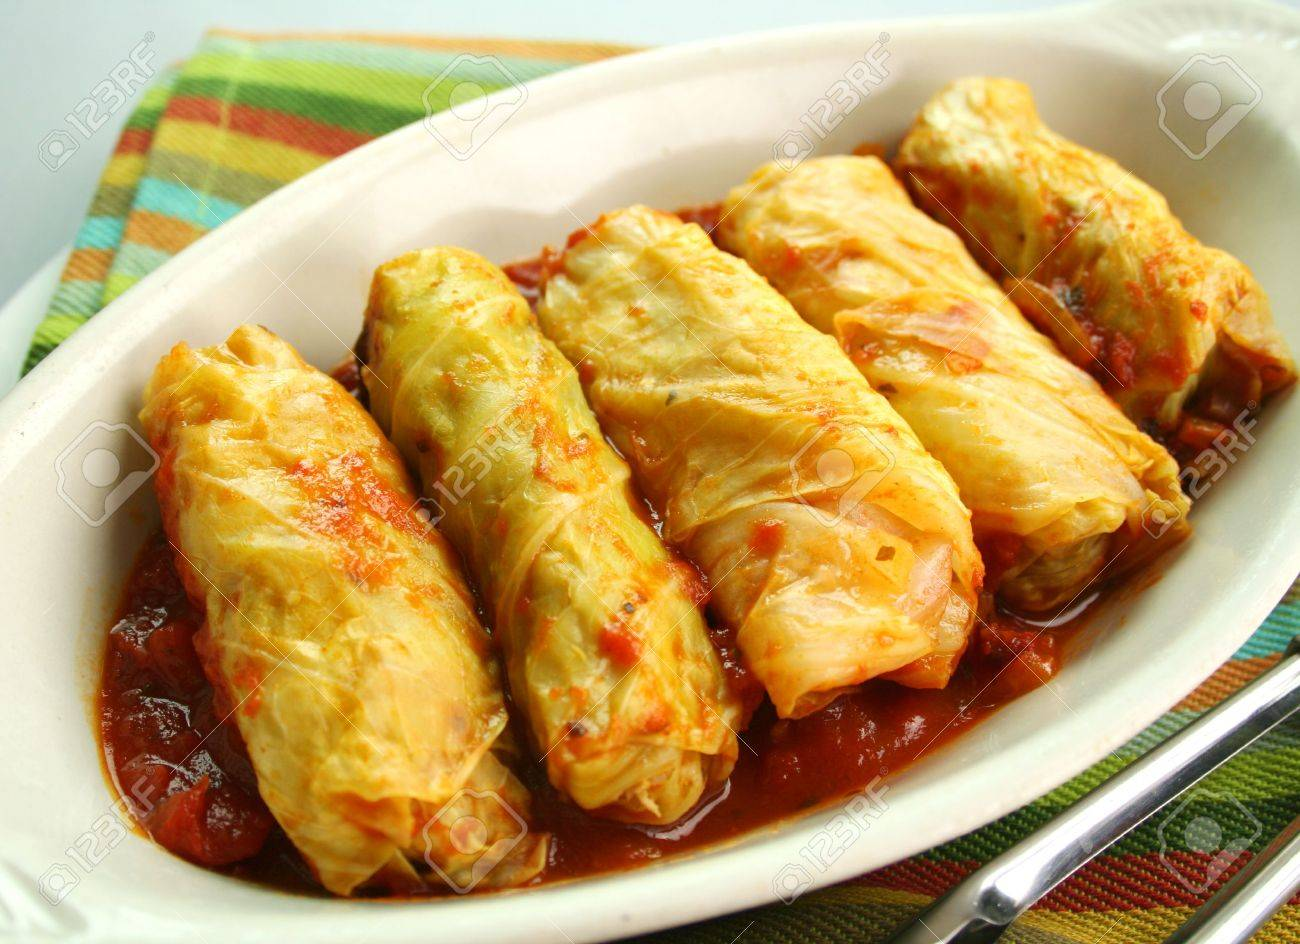 Piping hot baked cabbage rolls with a tomato sauce ready to serve. - 6120021